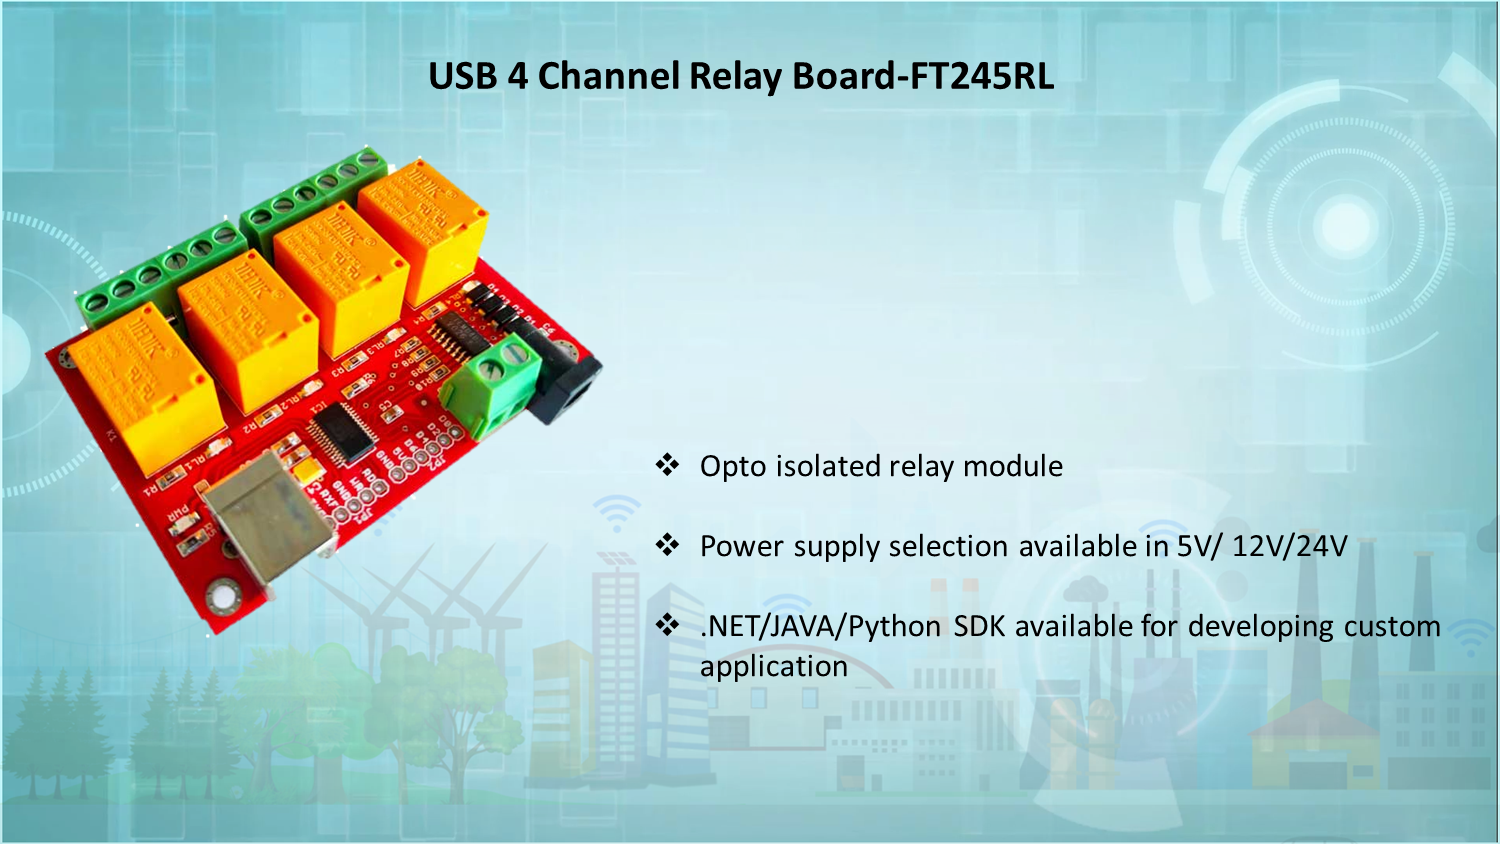 USB 4 CHANNEL RELAY